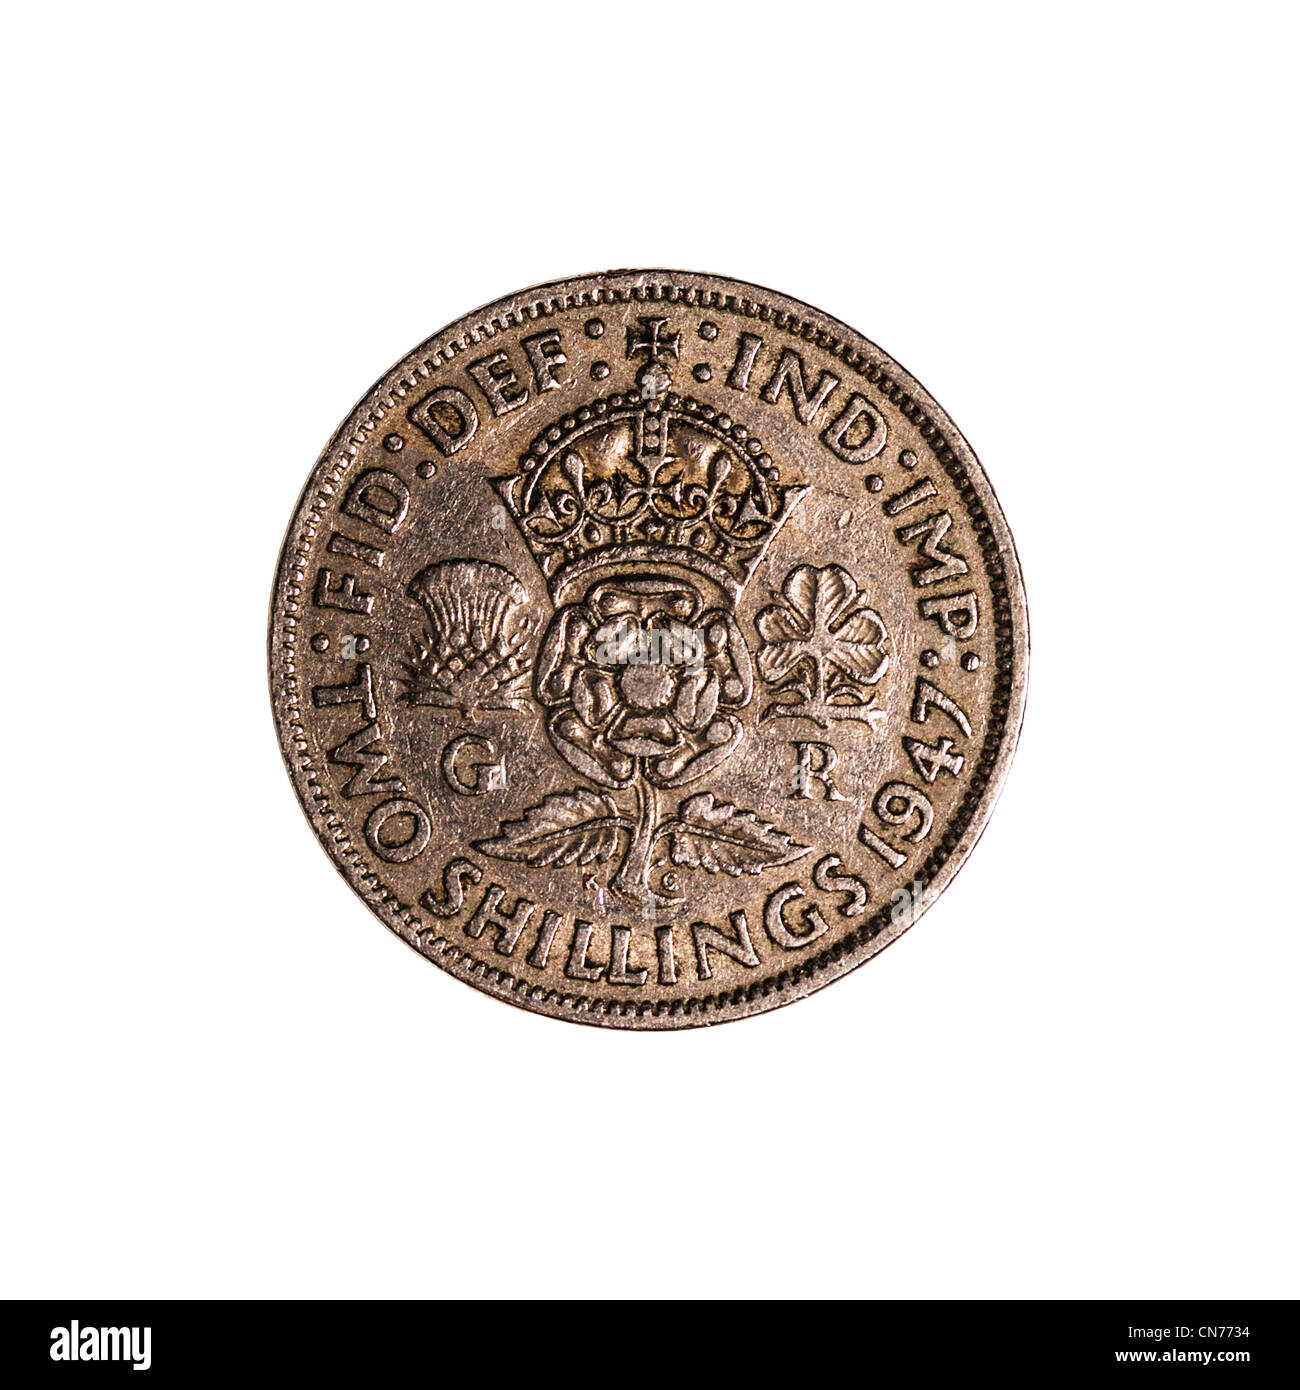 An English pre decimal two shillings coin dated 1947 on a white background - Stock Image